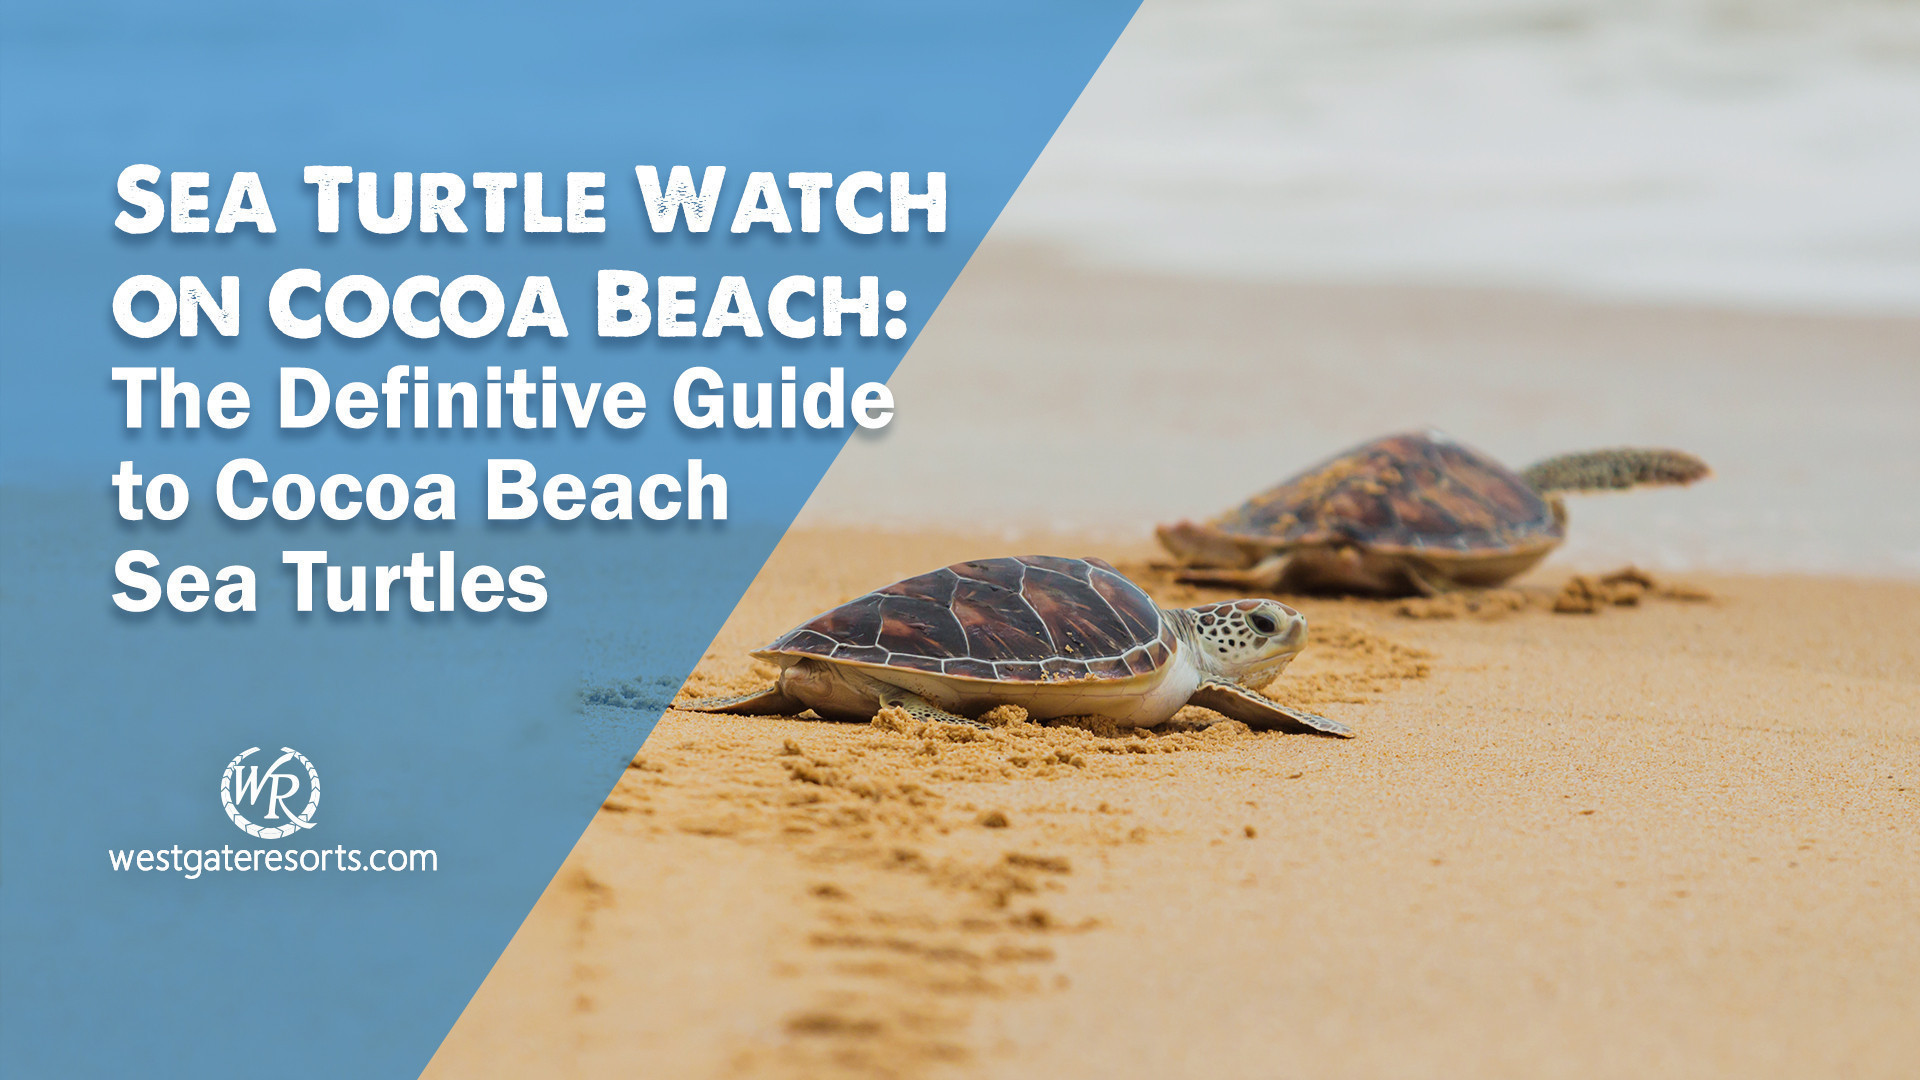 Sea Turtle Watch on Cocoa Beach: The Definitive Guide to Cocoa Beach Sea Turtles